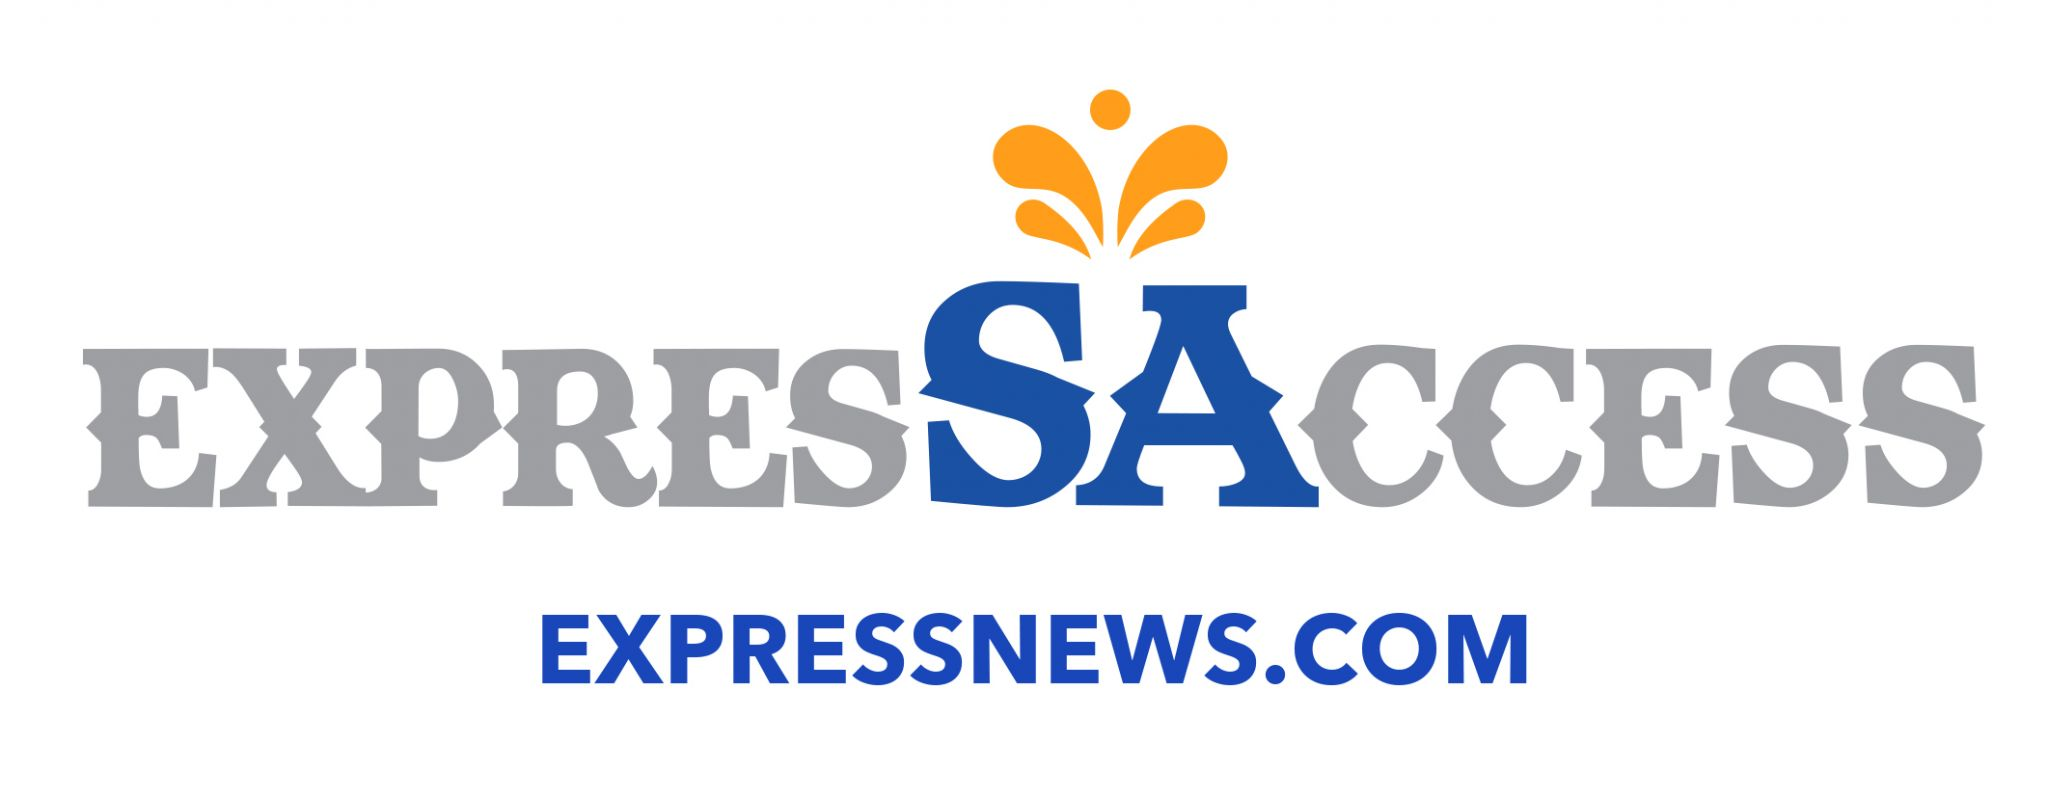 Banner image of the words Express Access